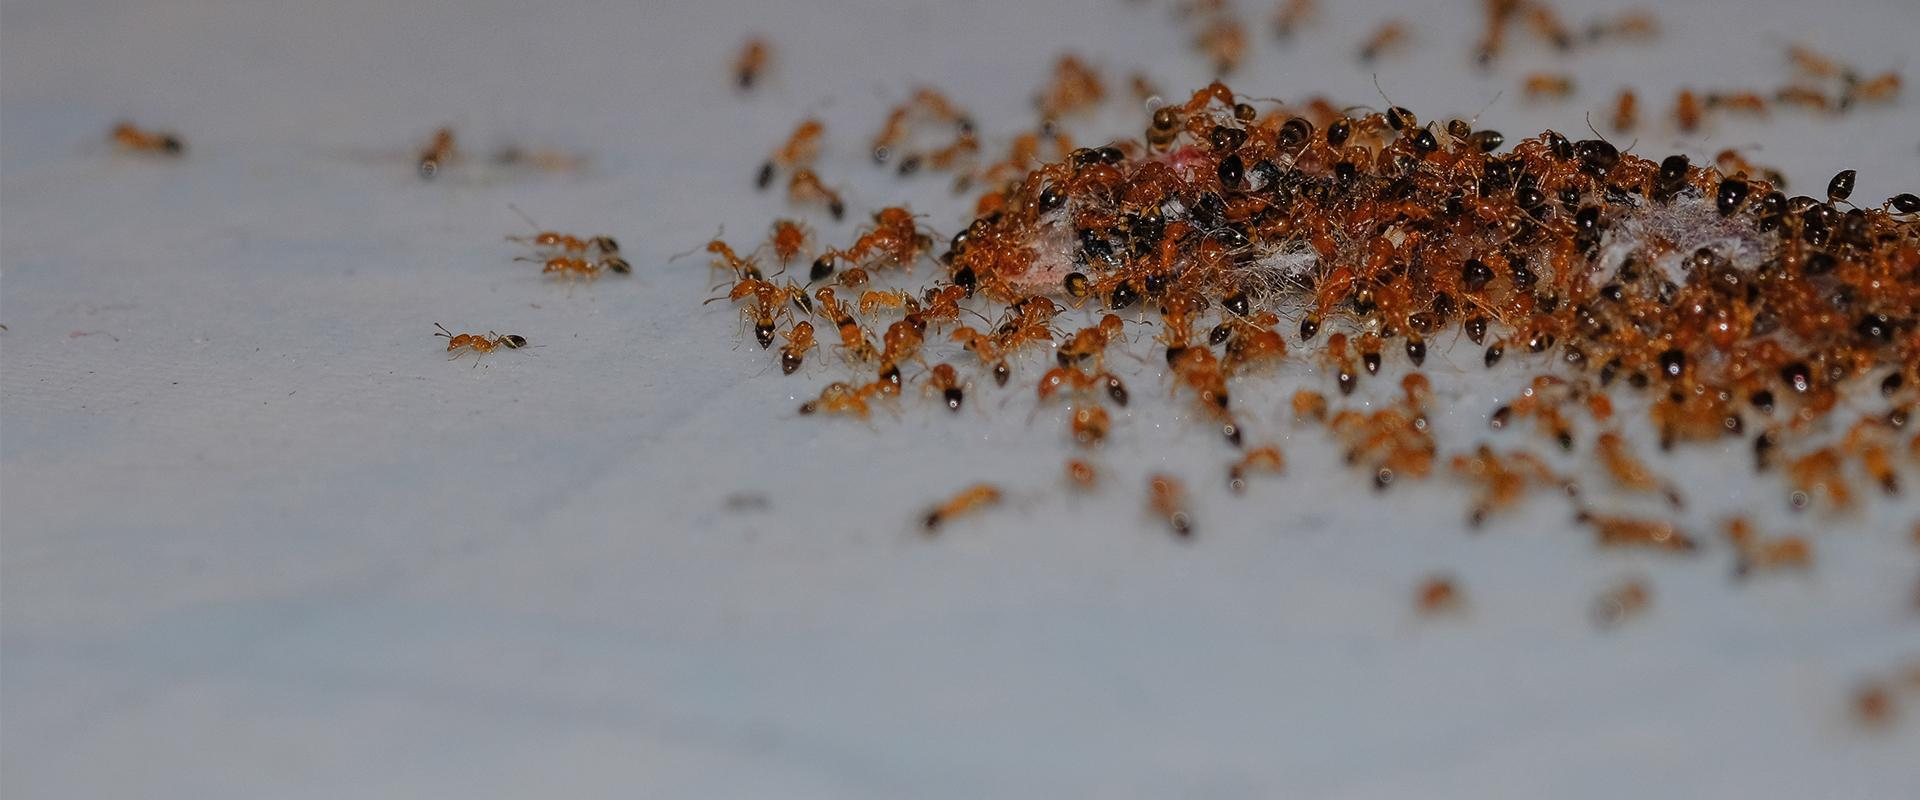 hundreds of ants on the floor of a kitchen in santa clarita california